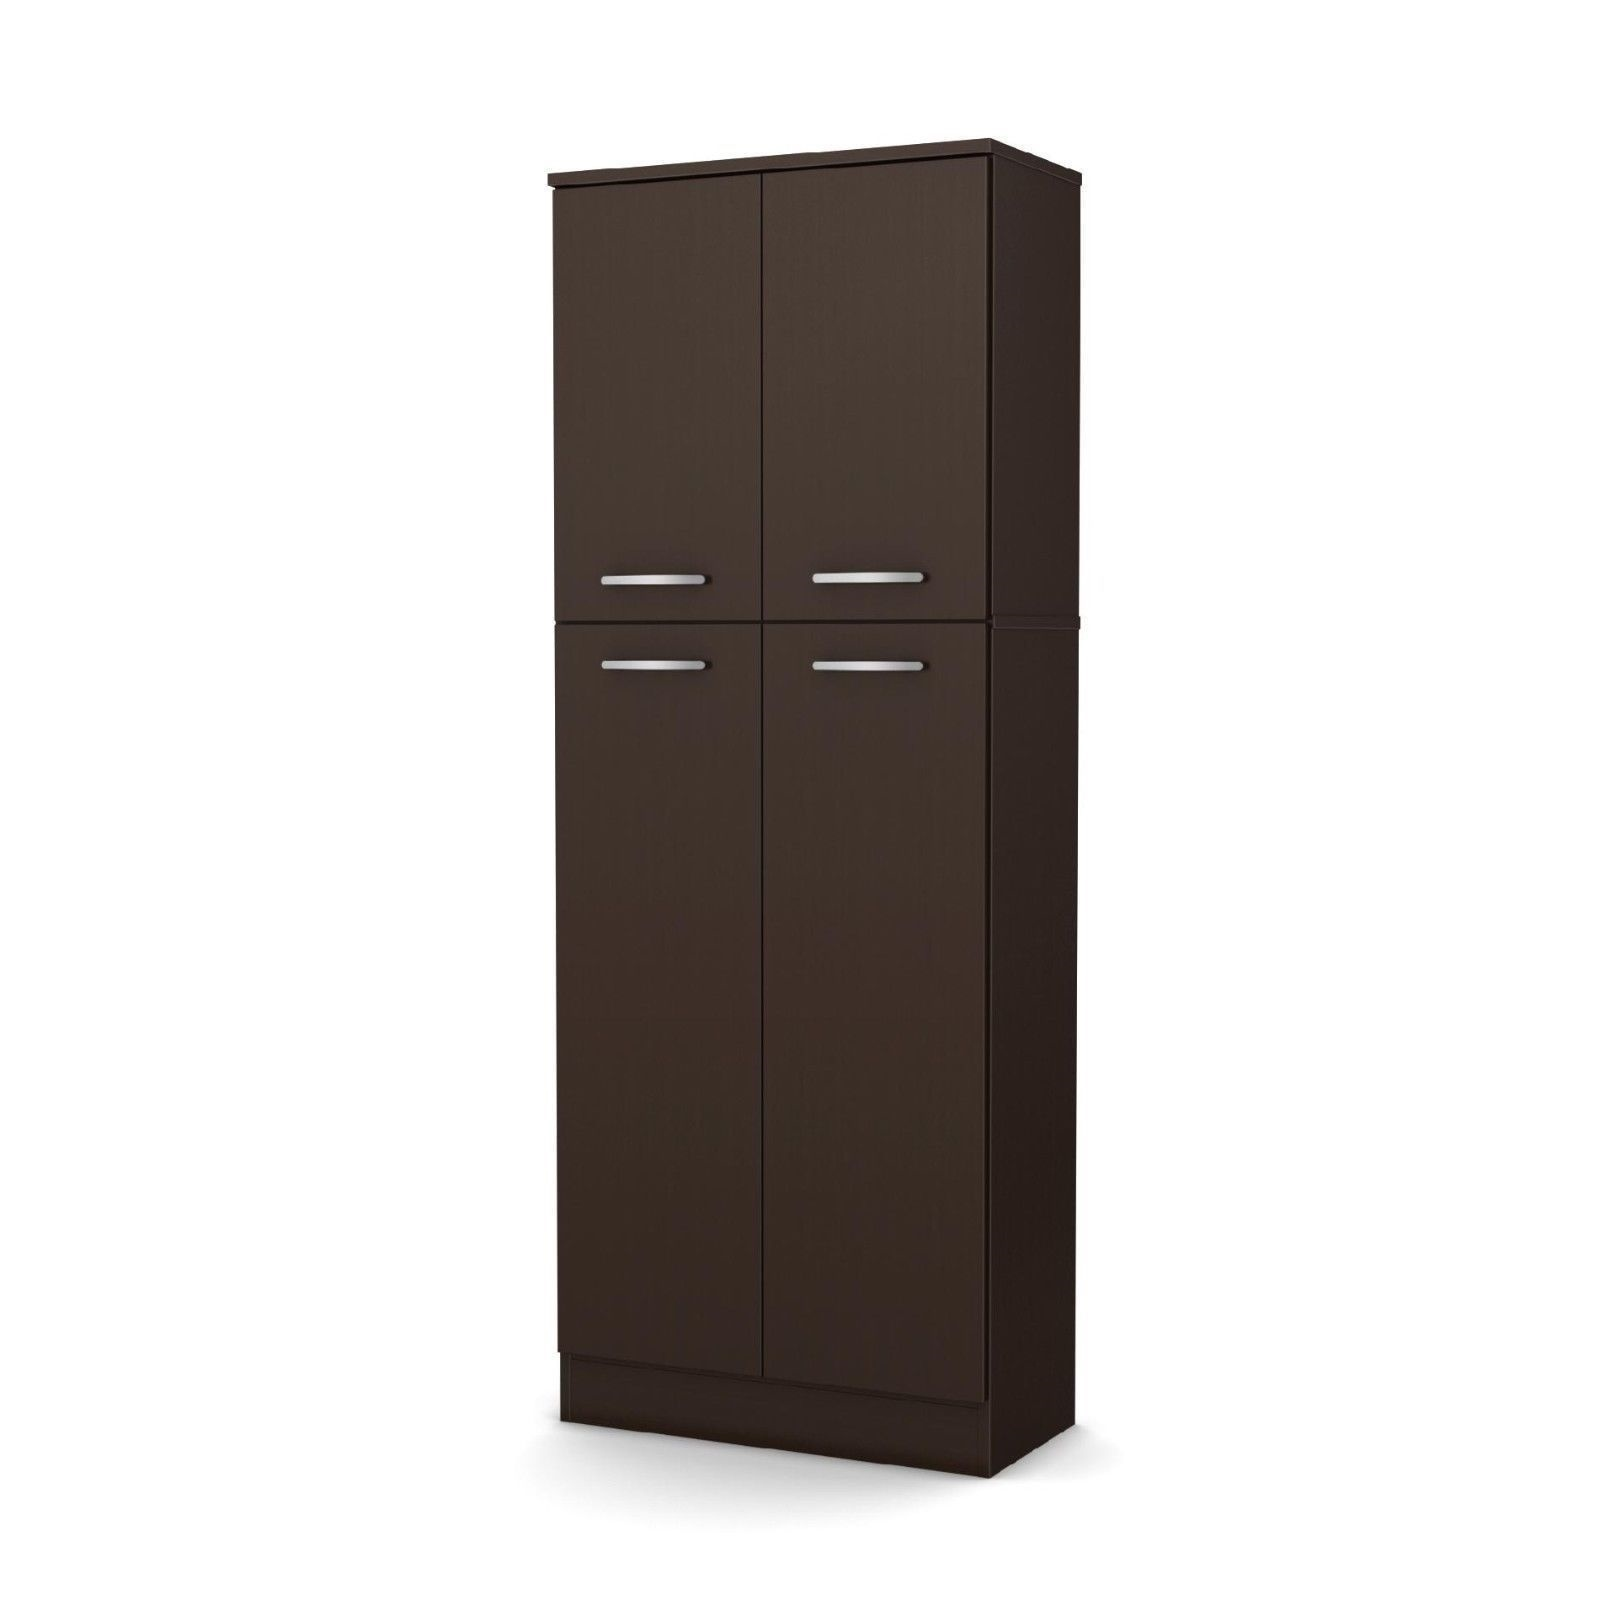 New Pantry Storage Cabinet Shelving Laundry Room Closet